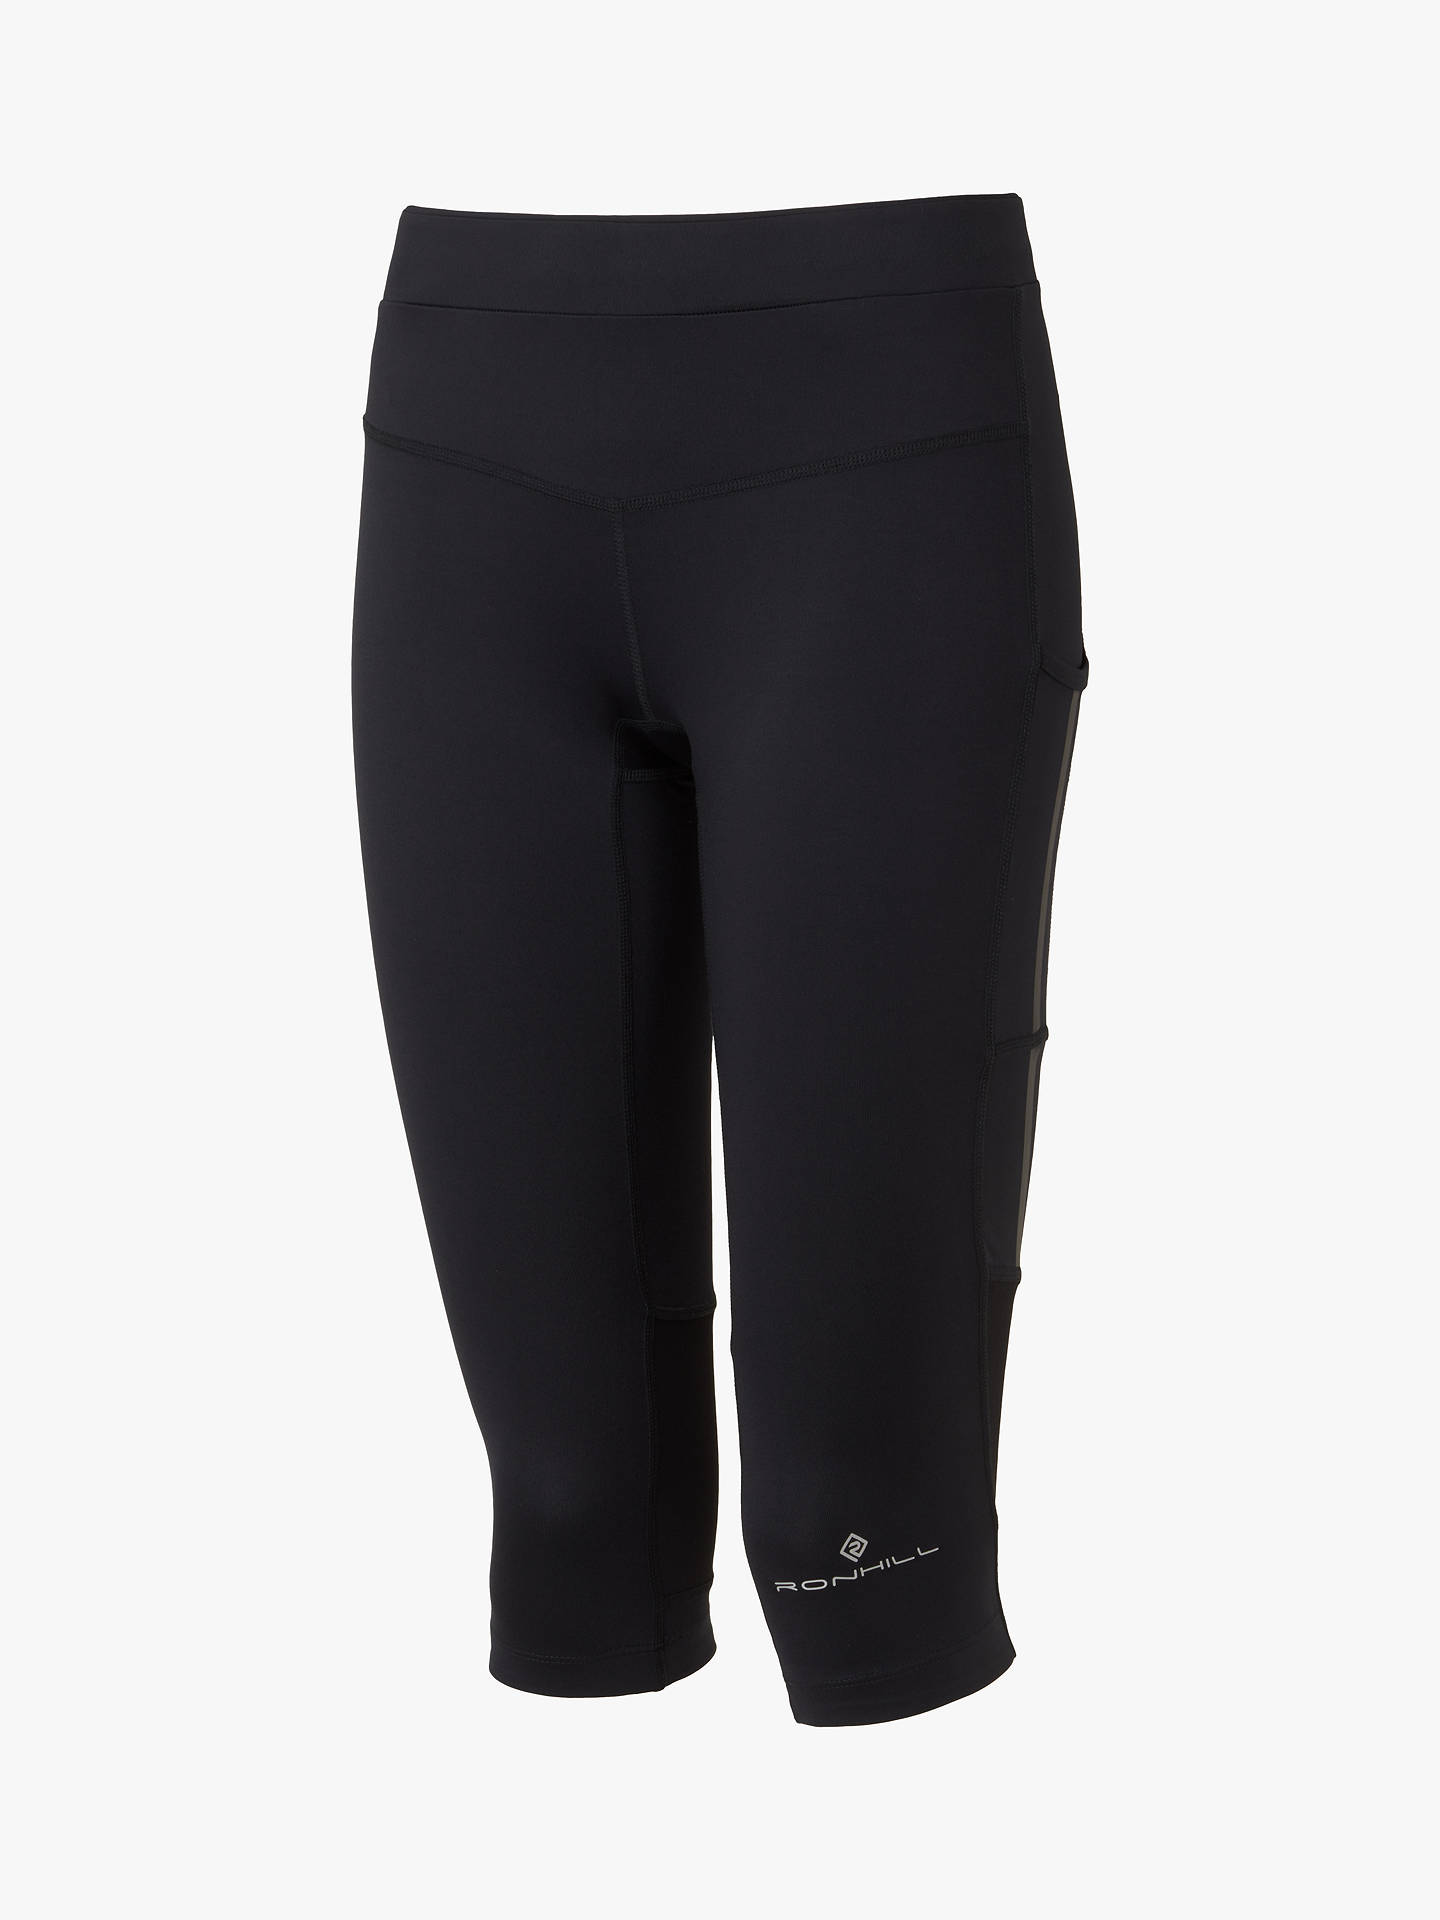 Buy Ronhill Stride Stretch Running Capris, All Black, 8 Online at johnlewis.com